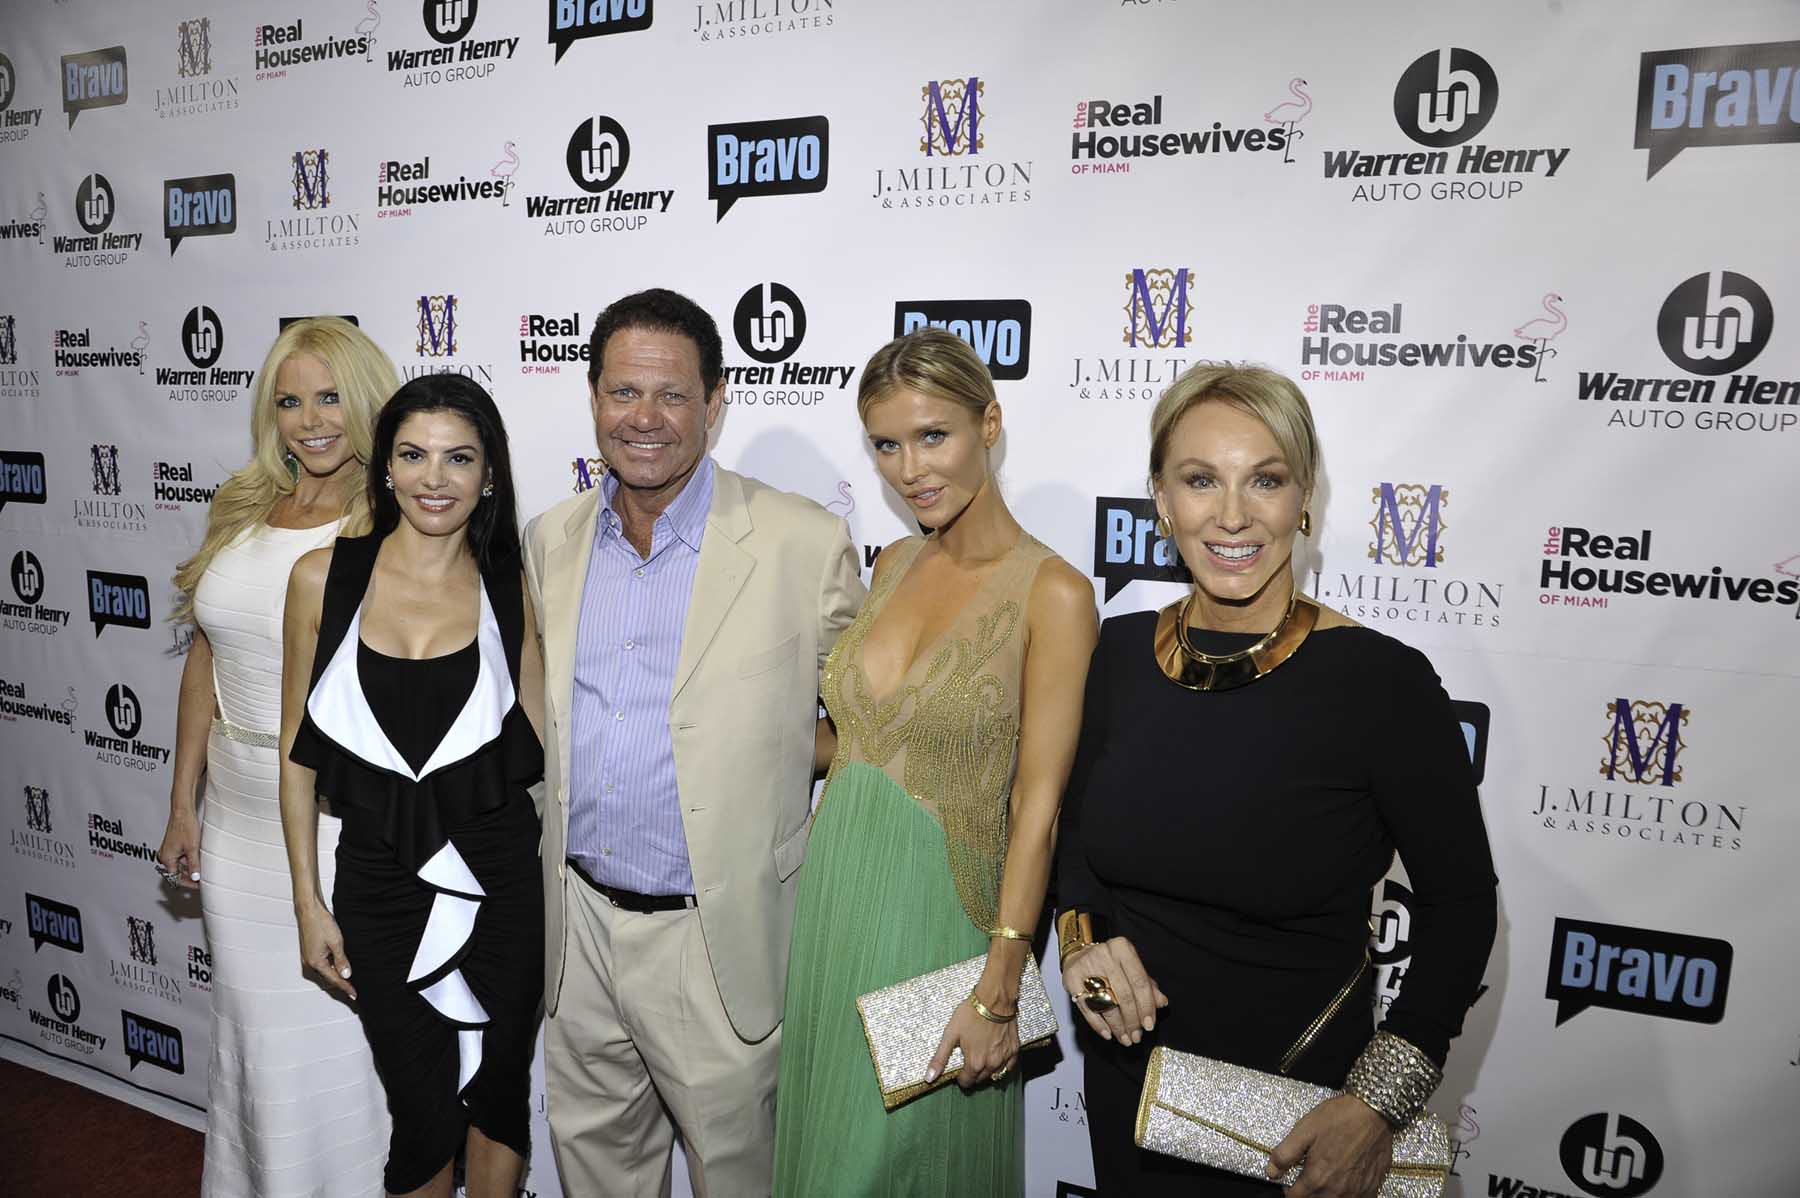 Alexia Echevarria; Adriana De Moura; Warren Henry Zinn, President and CEO of Warren Henry Auto Group; Joanna Krupa and Lea Black